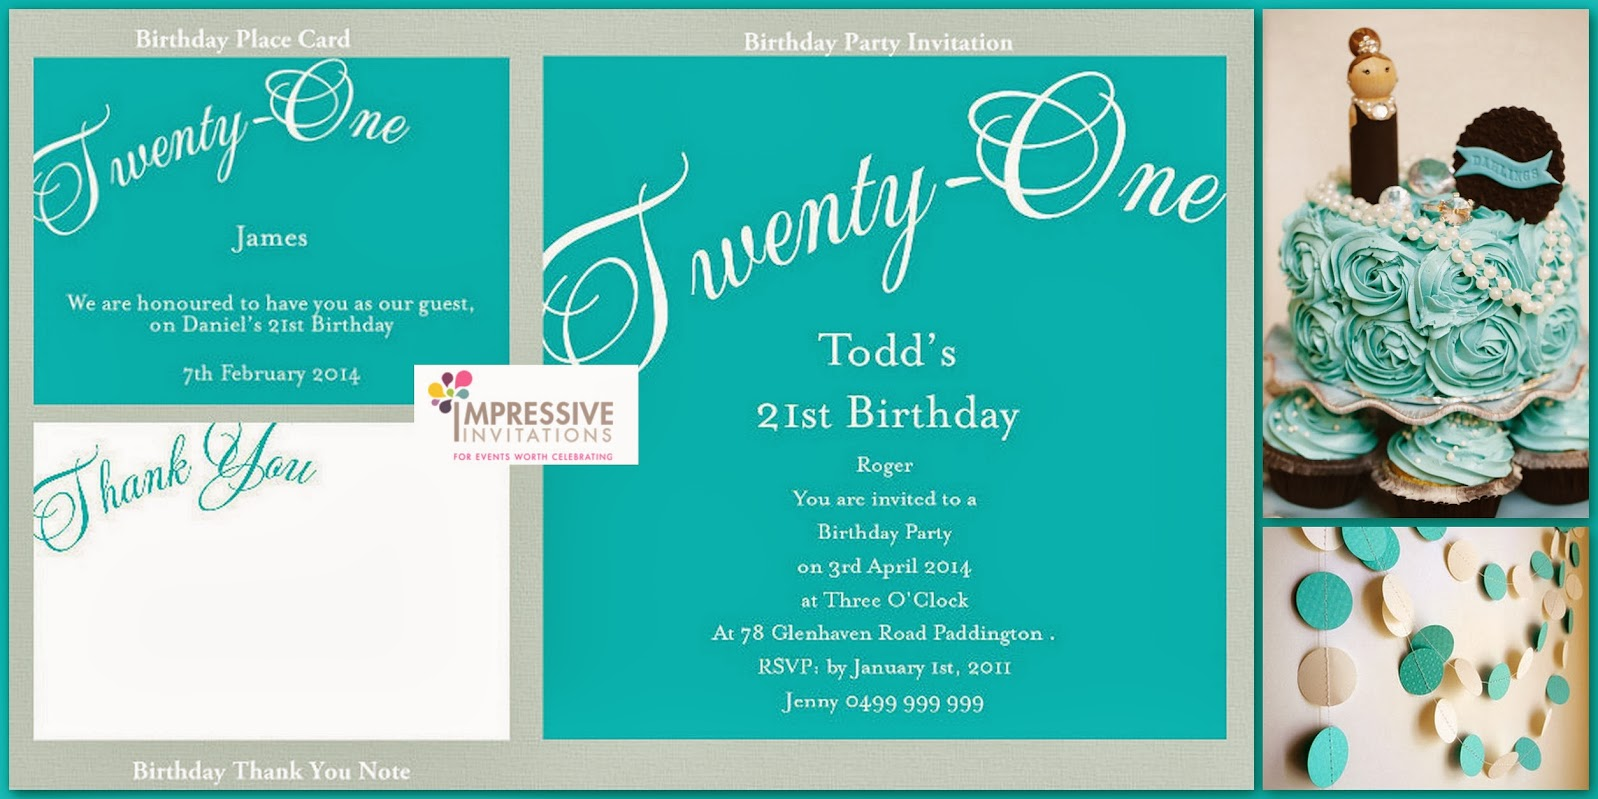 Impressive Invitations Twenty One 21st Birthday Invitation Inspirations